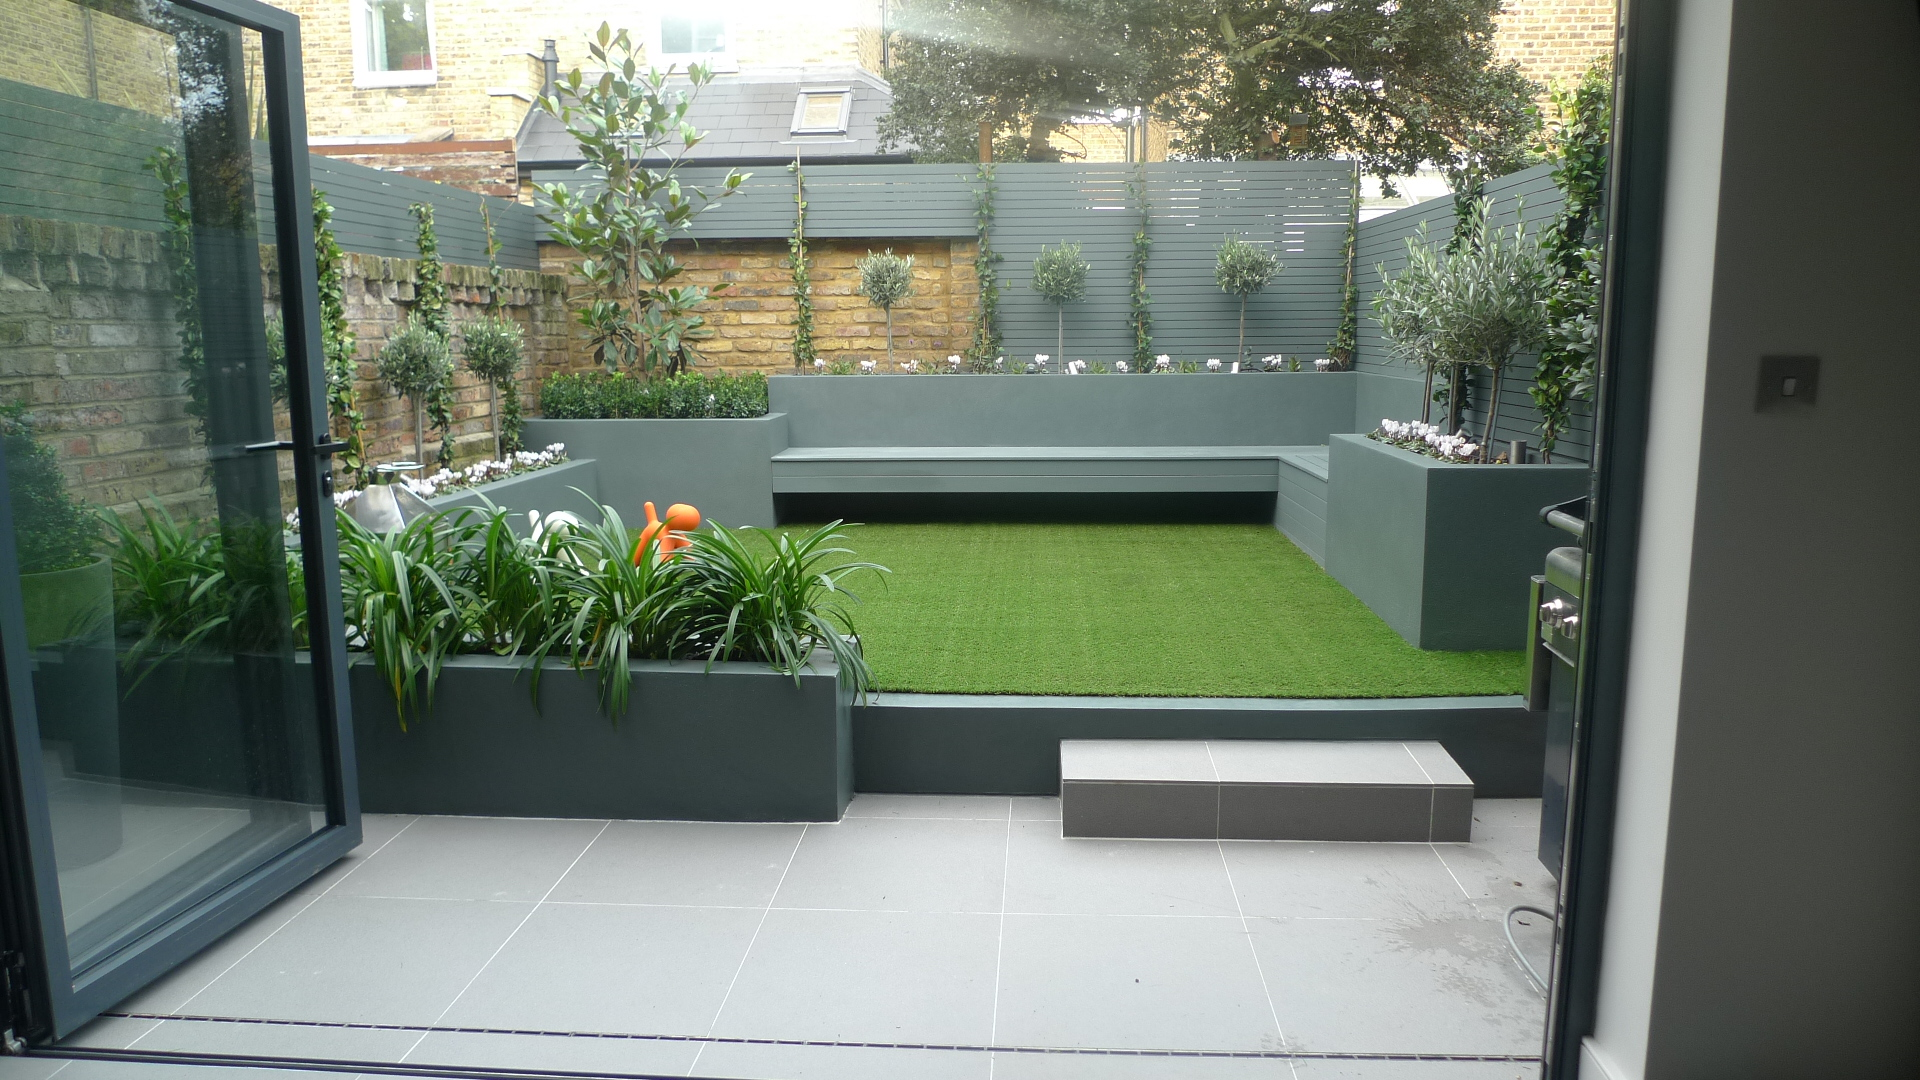 London garden design garden design for Small planting bed ideas